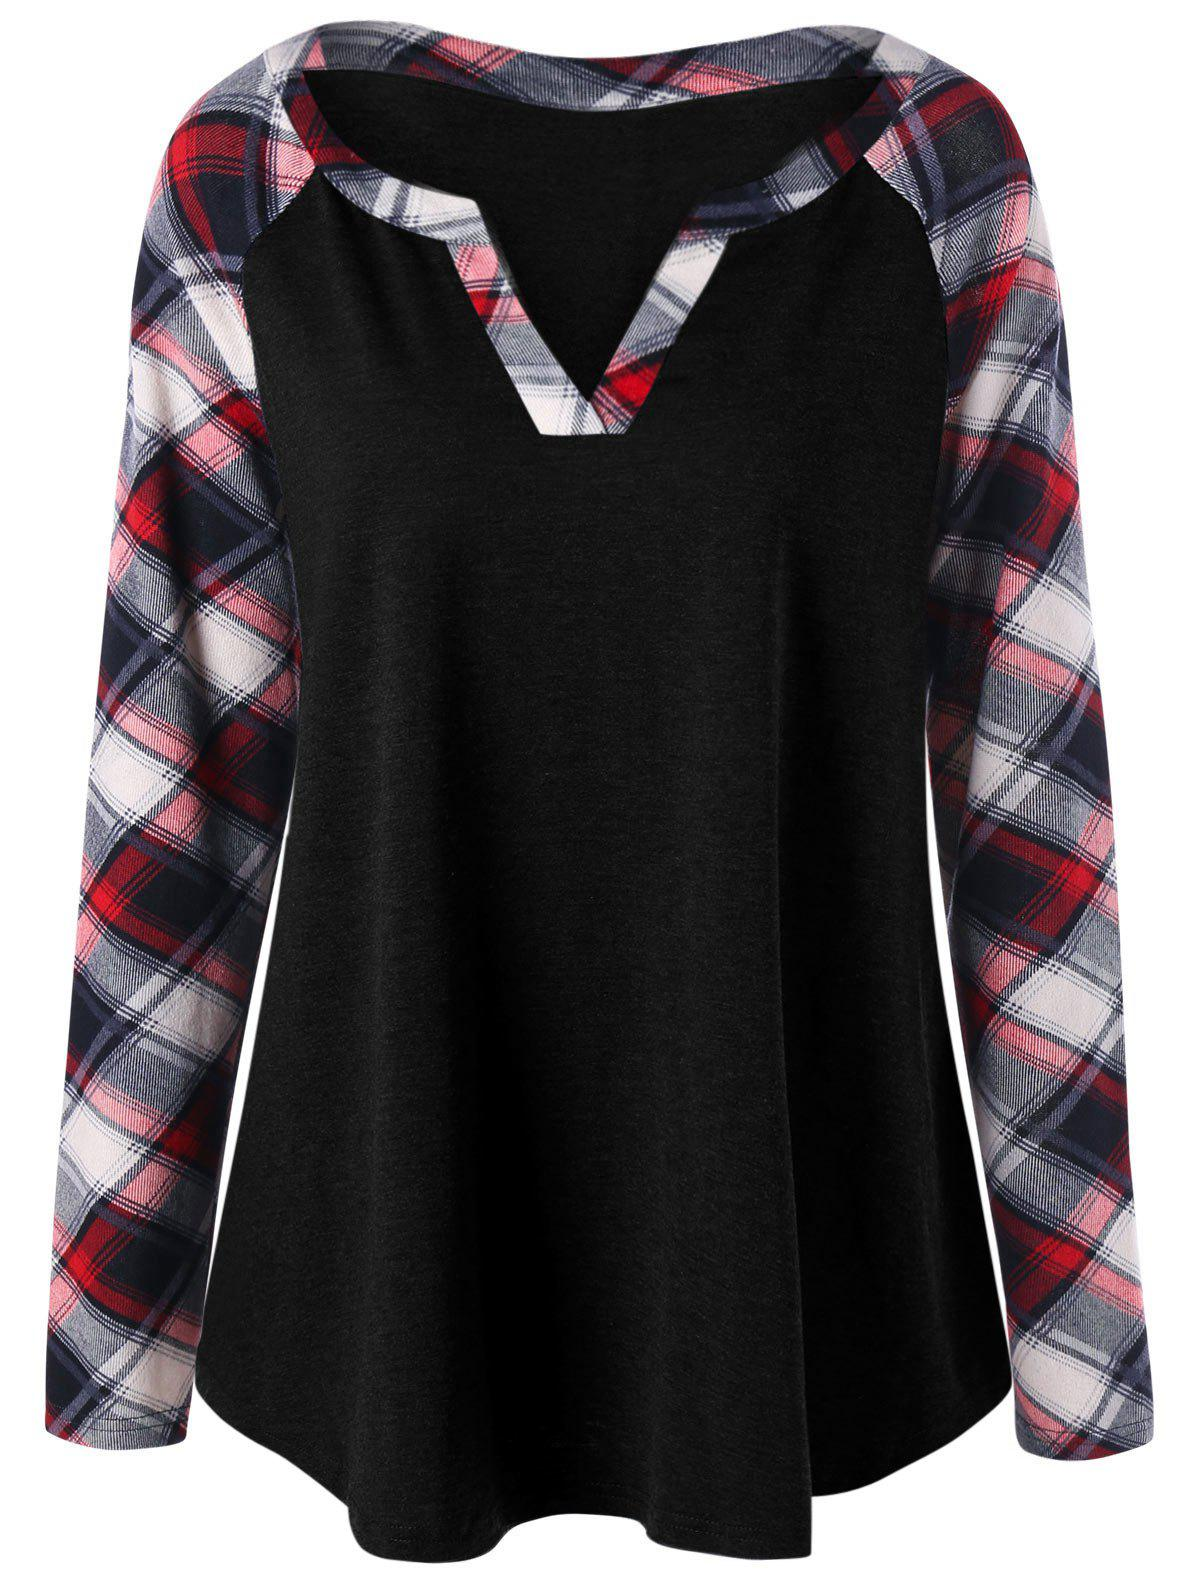 Plus Size Raglan Sleeve Plaid T-shirtWOMEN<br><br>Size: XL; Color: BLACK; Material: Rayon,Spandex; Shirt Length: Long; Sleeve Length: Full; Collar: V-Neck; Style: Casual; Season: Fall,Spring; Pattern Type: Plaid; Weight: 0.3000kg; Package Contents: 1 x Top;